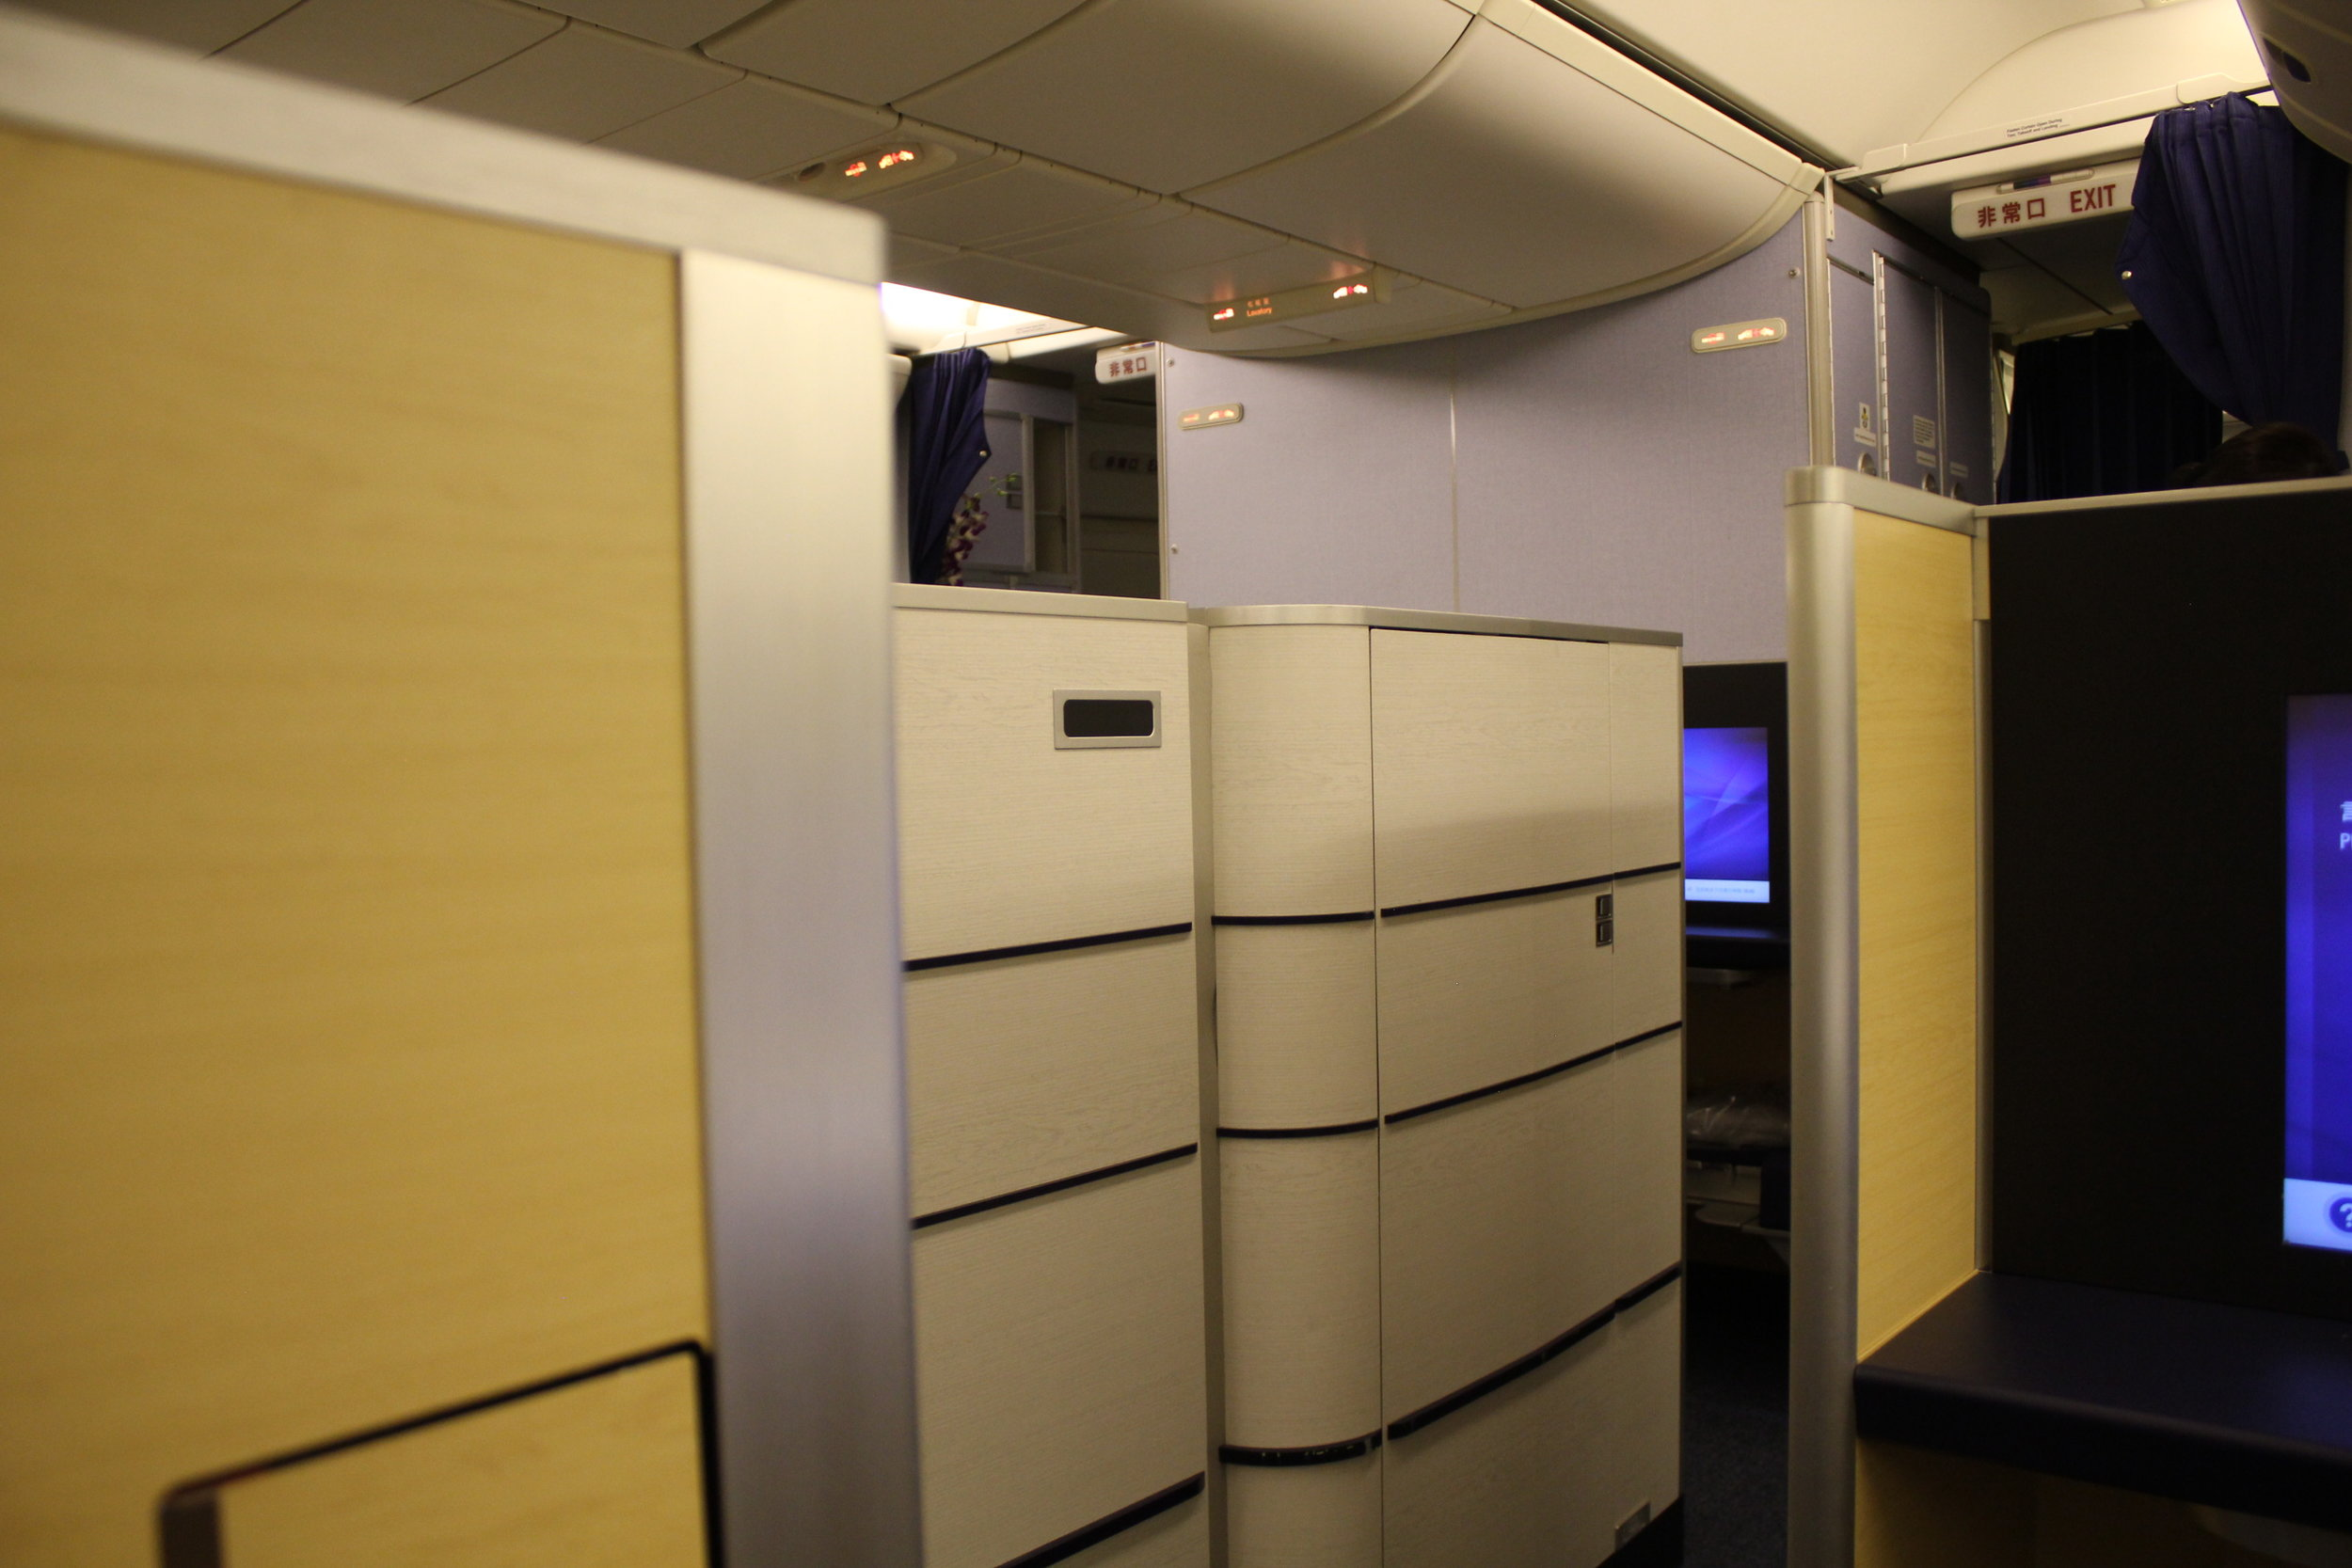 ANA First Class – In-seat privacy